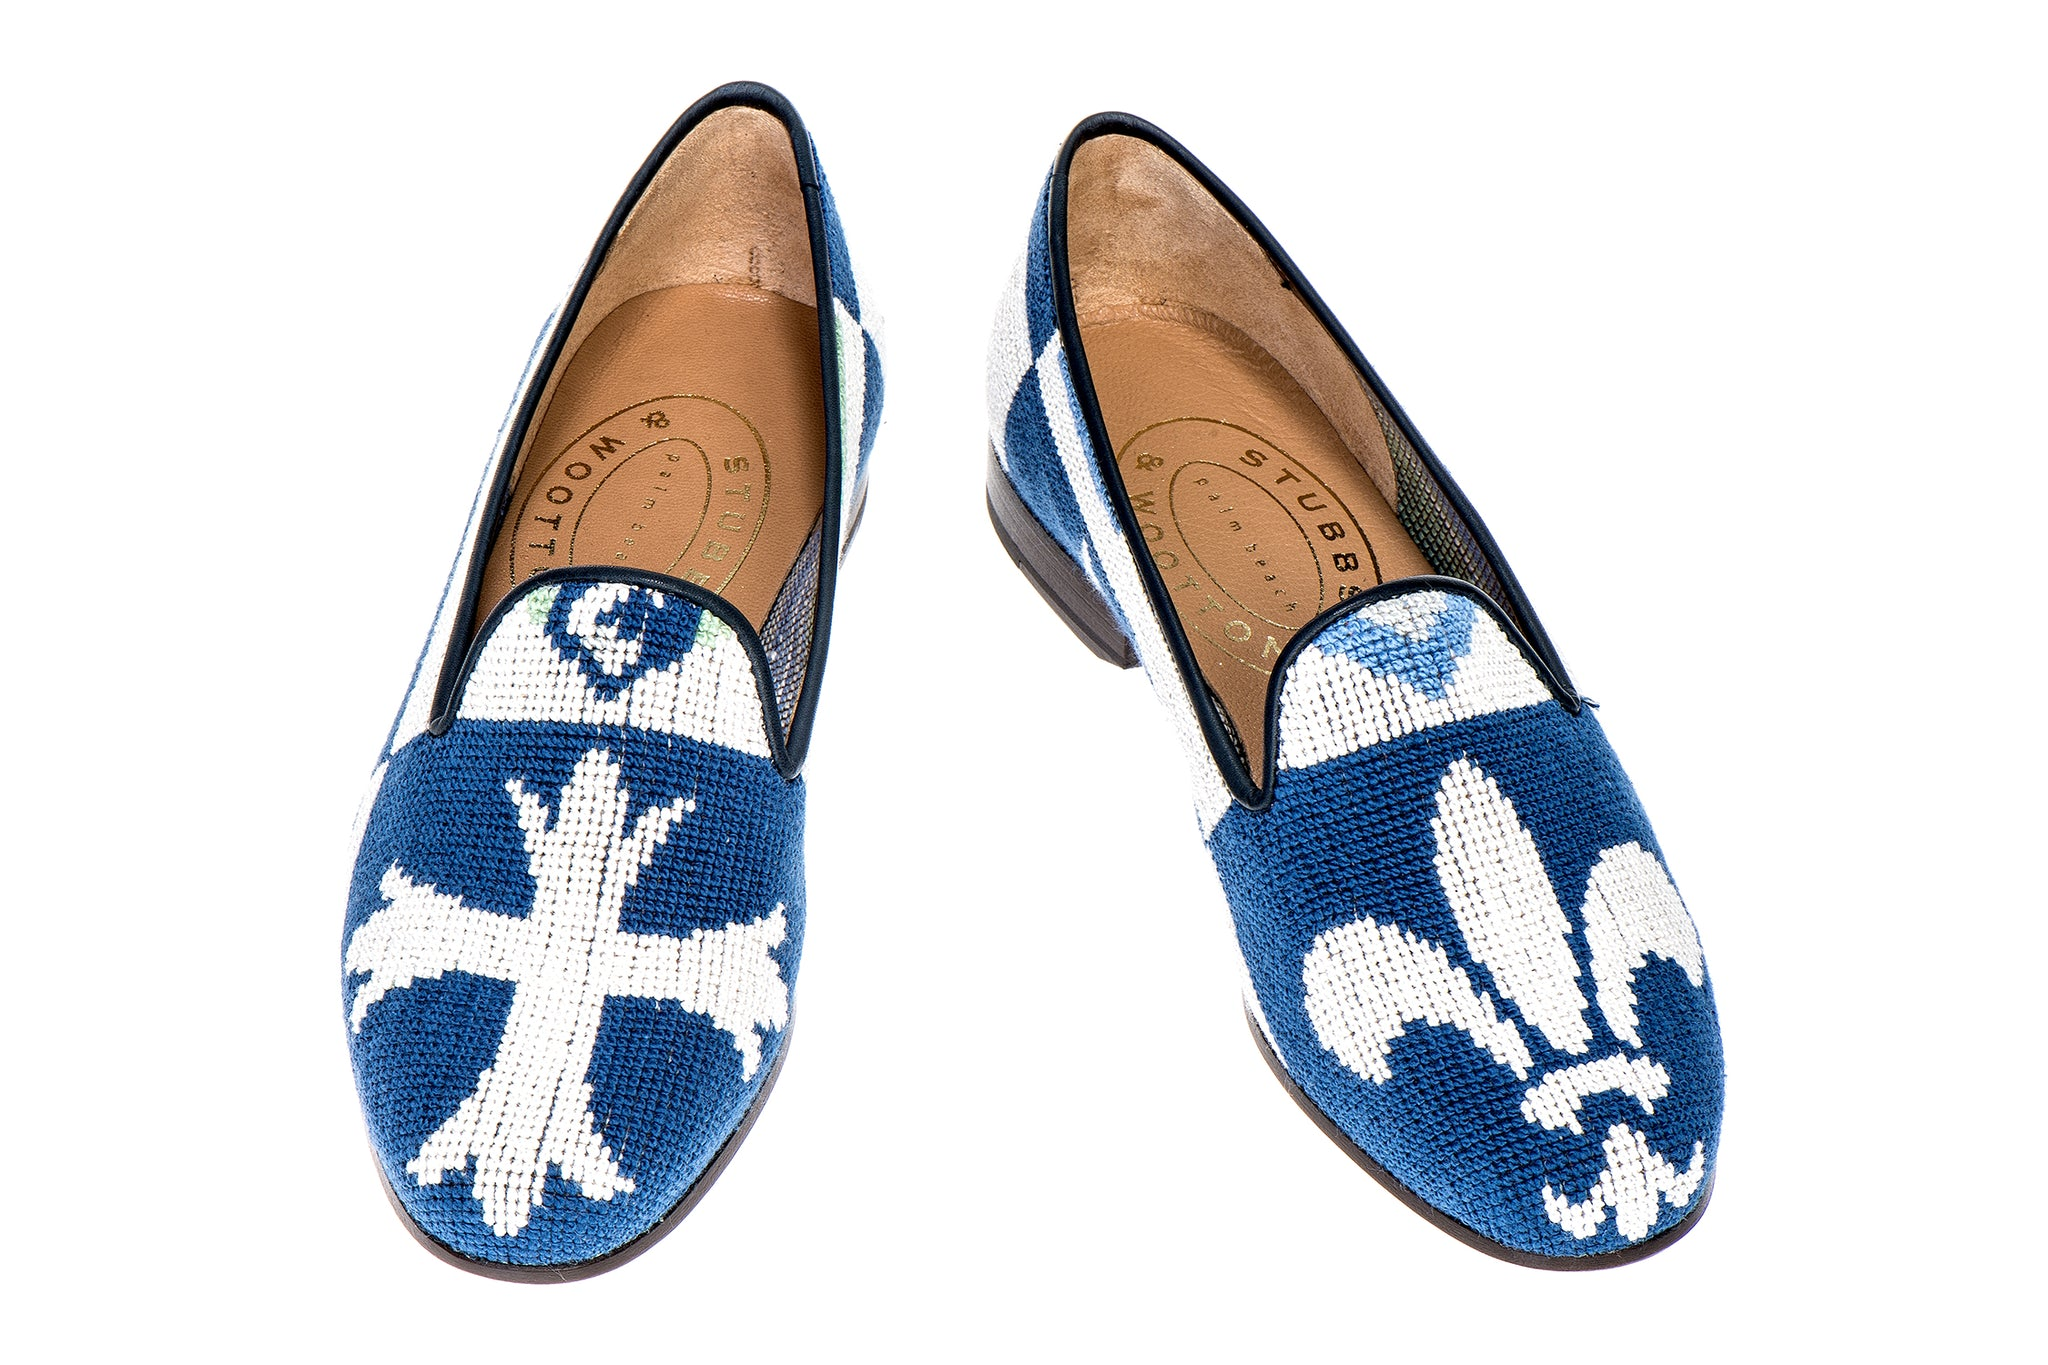 Crest Blue Women Slipper